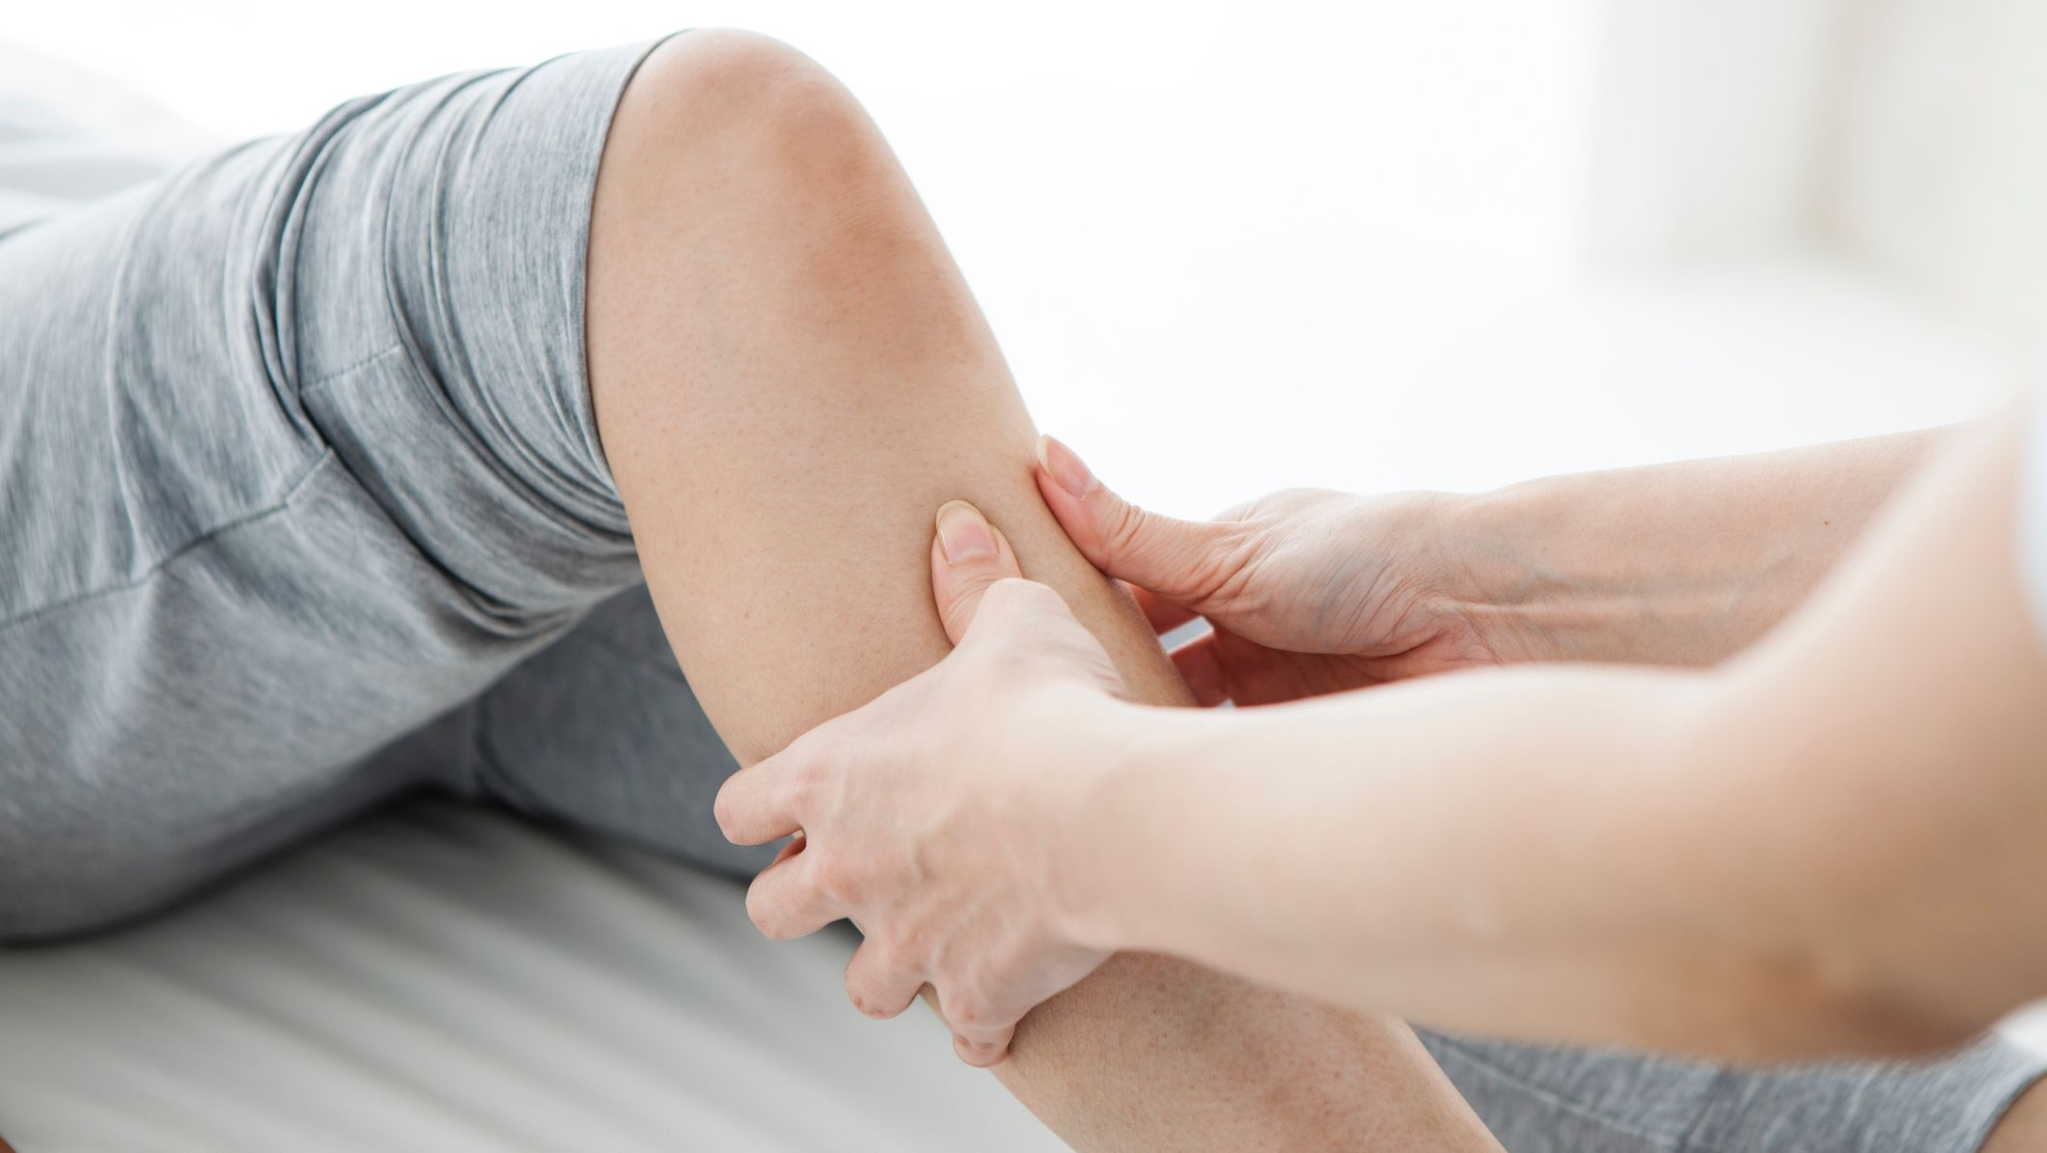 Massages Can Be Effective for Treating Arthritis in Knees: Study